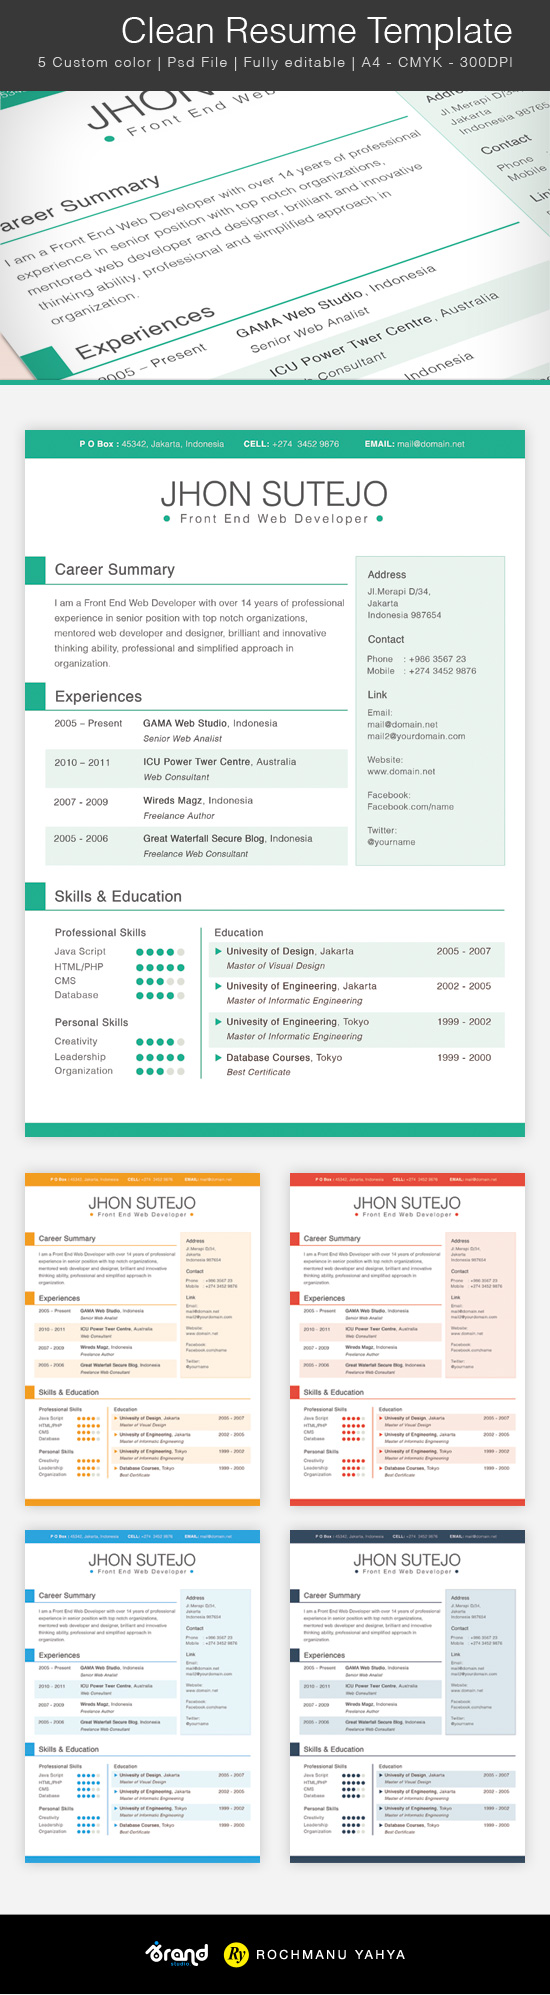 Free Clean Resume Template - 5 Colors